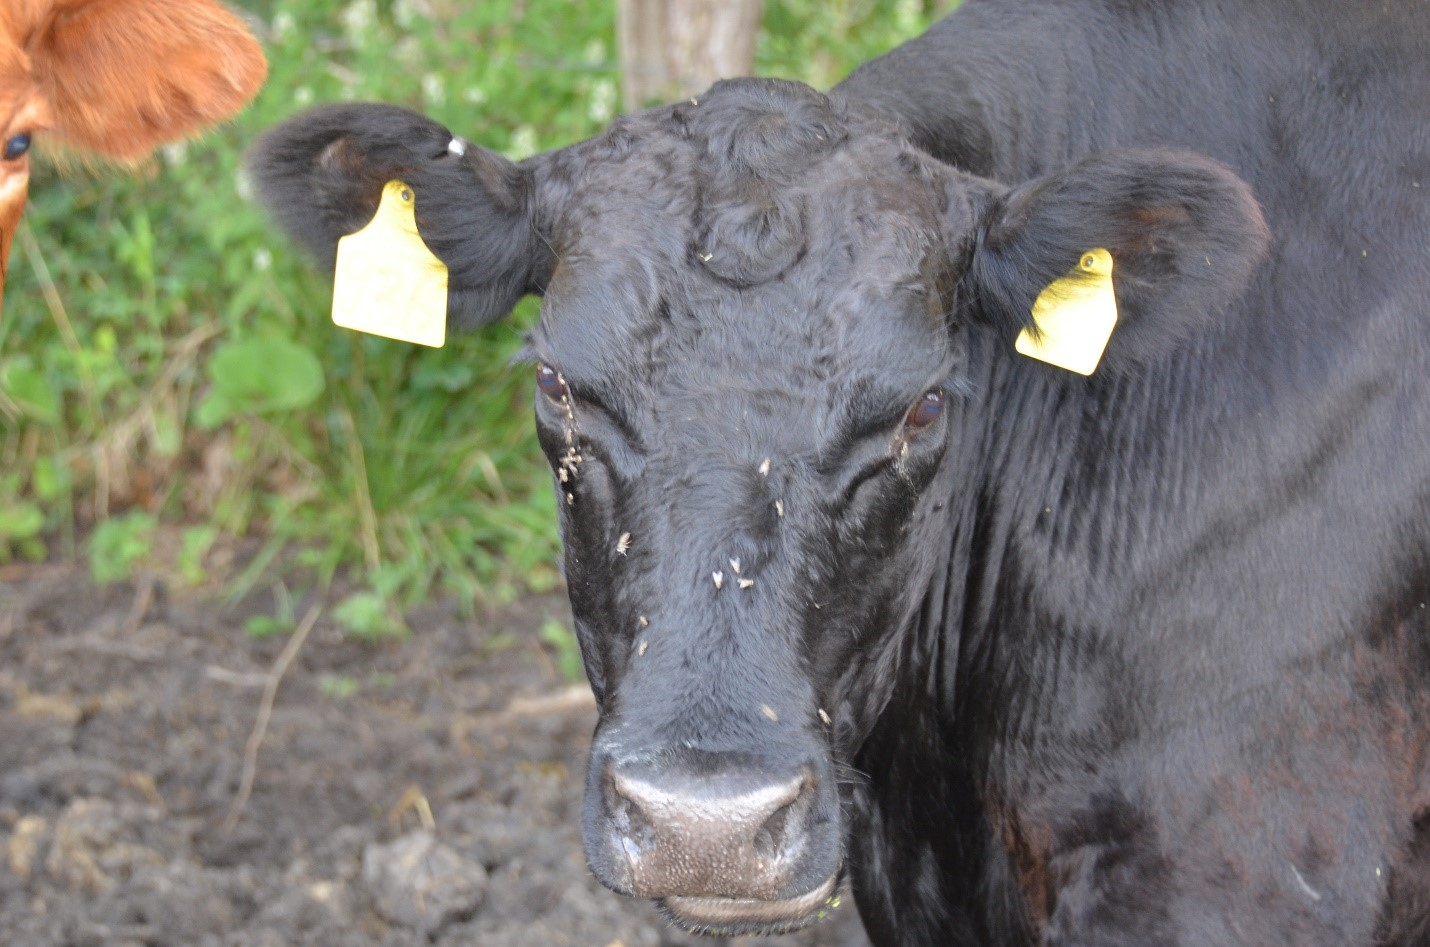 Face flies on a cow